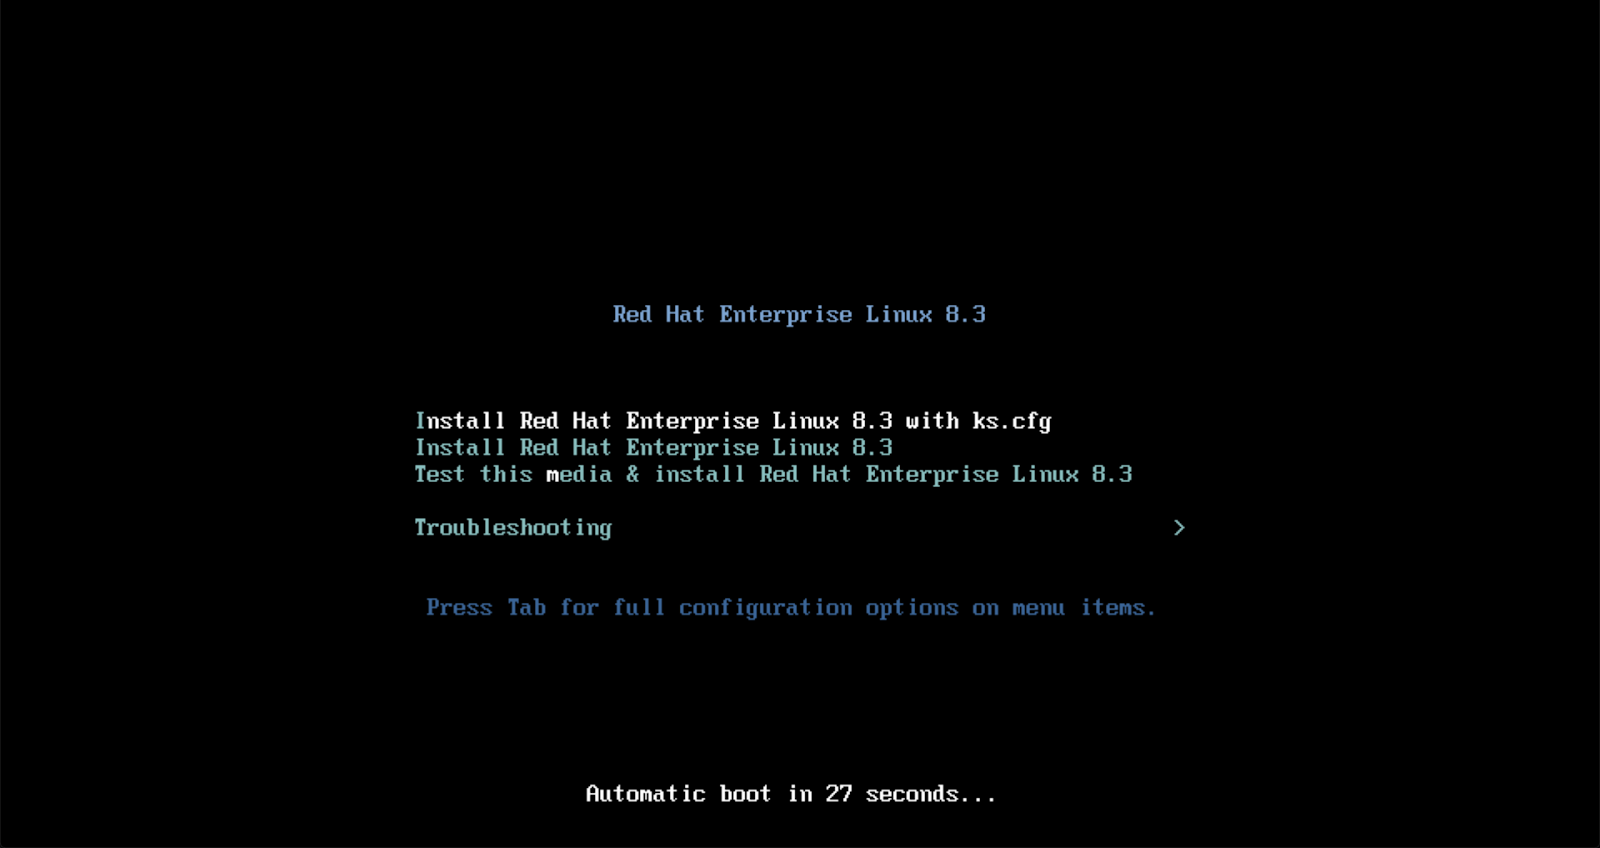 Automating a RHEL 8 Installation Using the VMware REST Ansible Collection